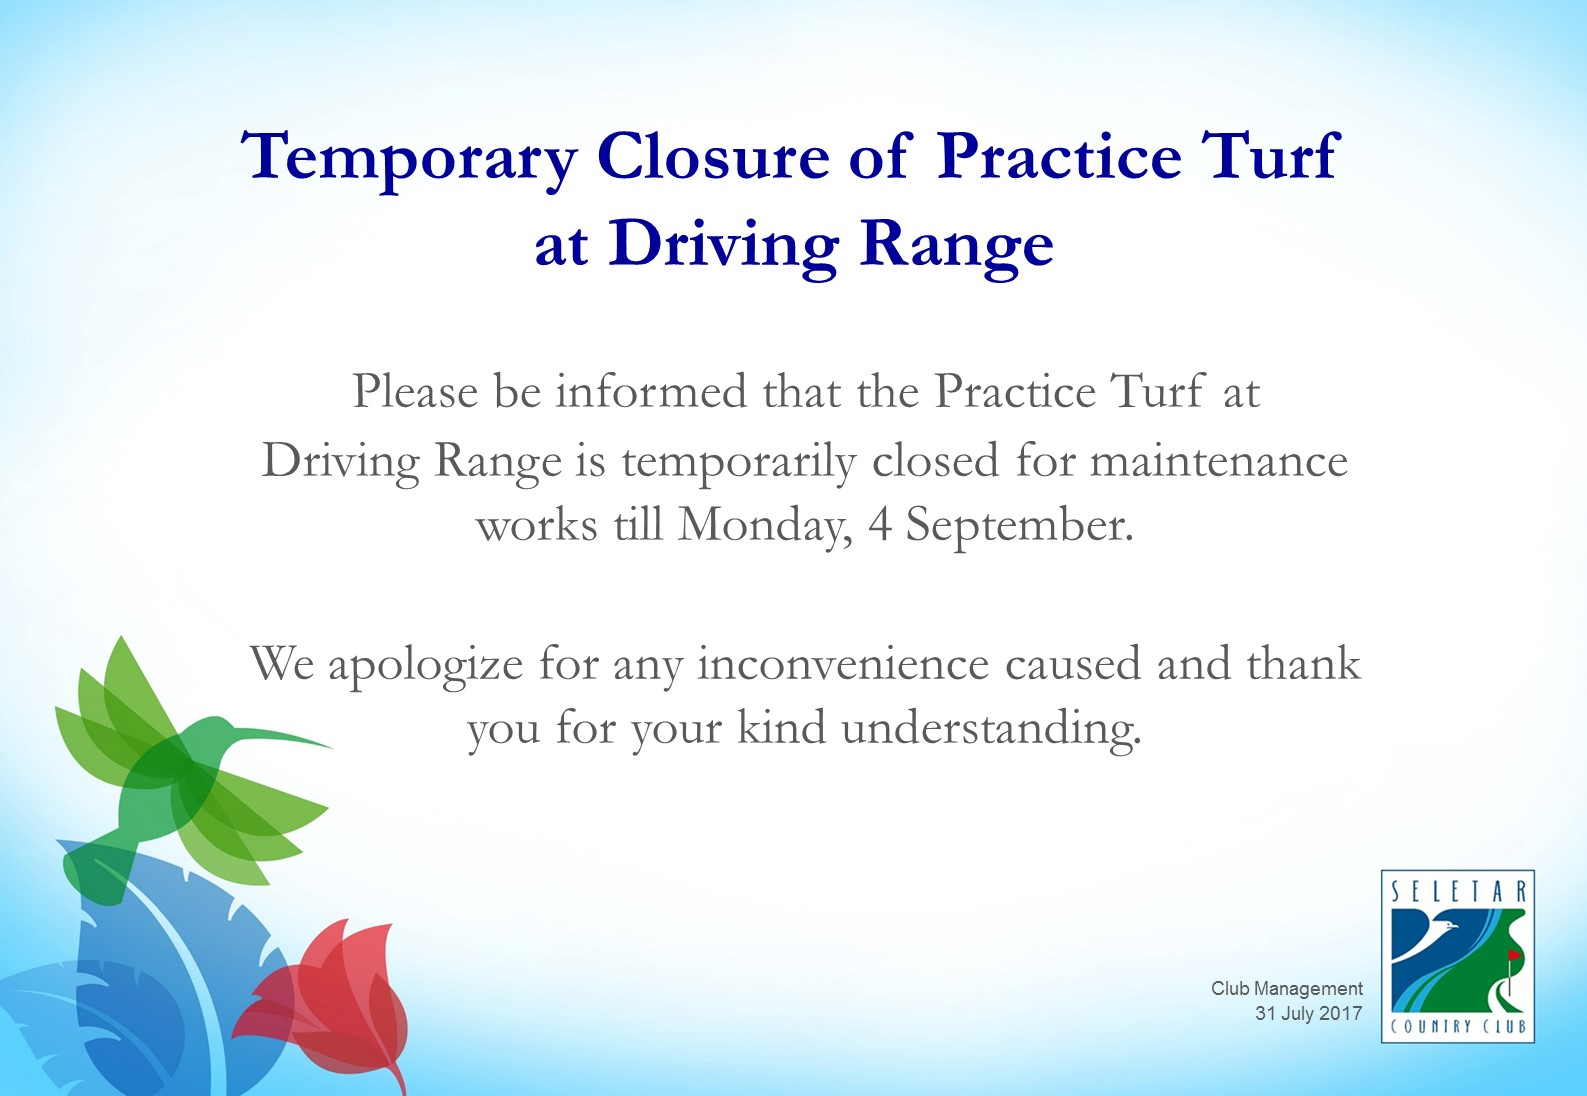 Temporary Closure of Practice Turf at Driving Range_R1